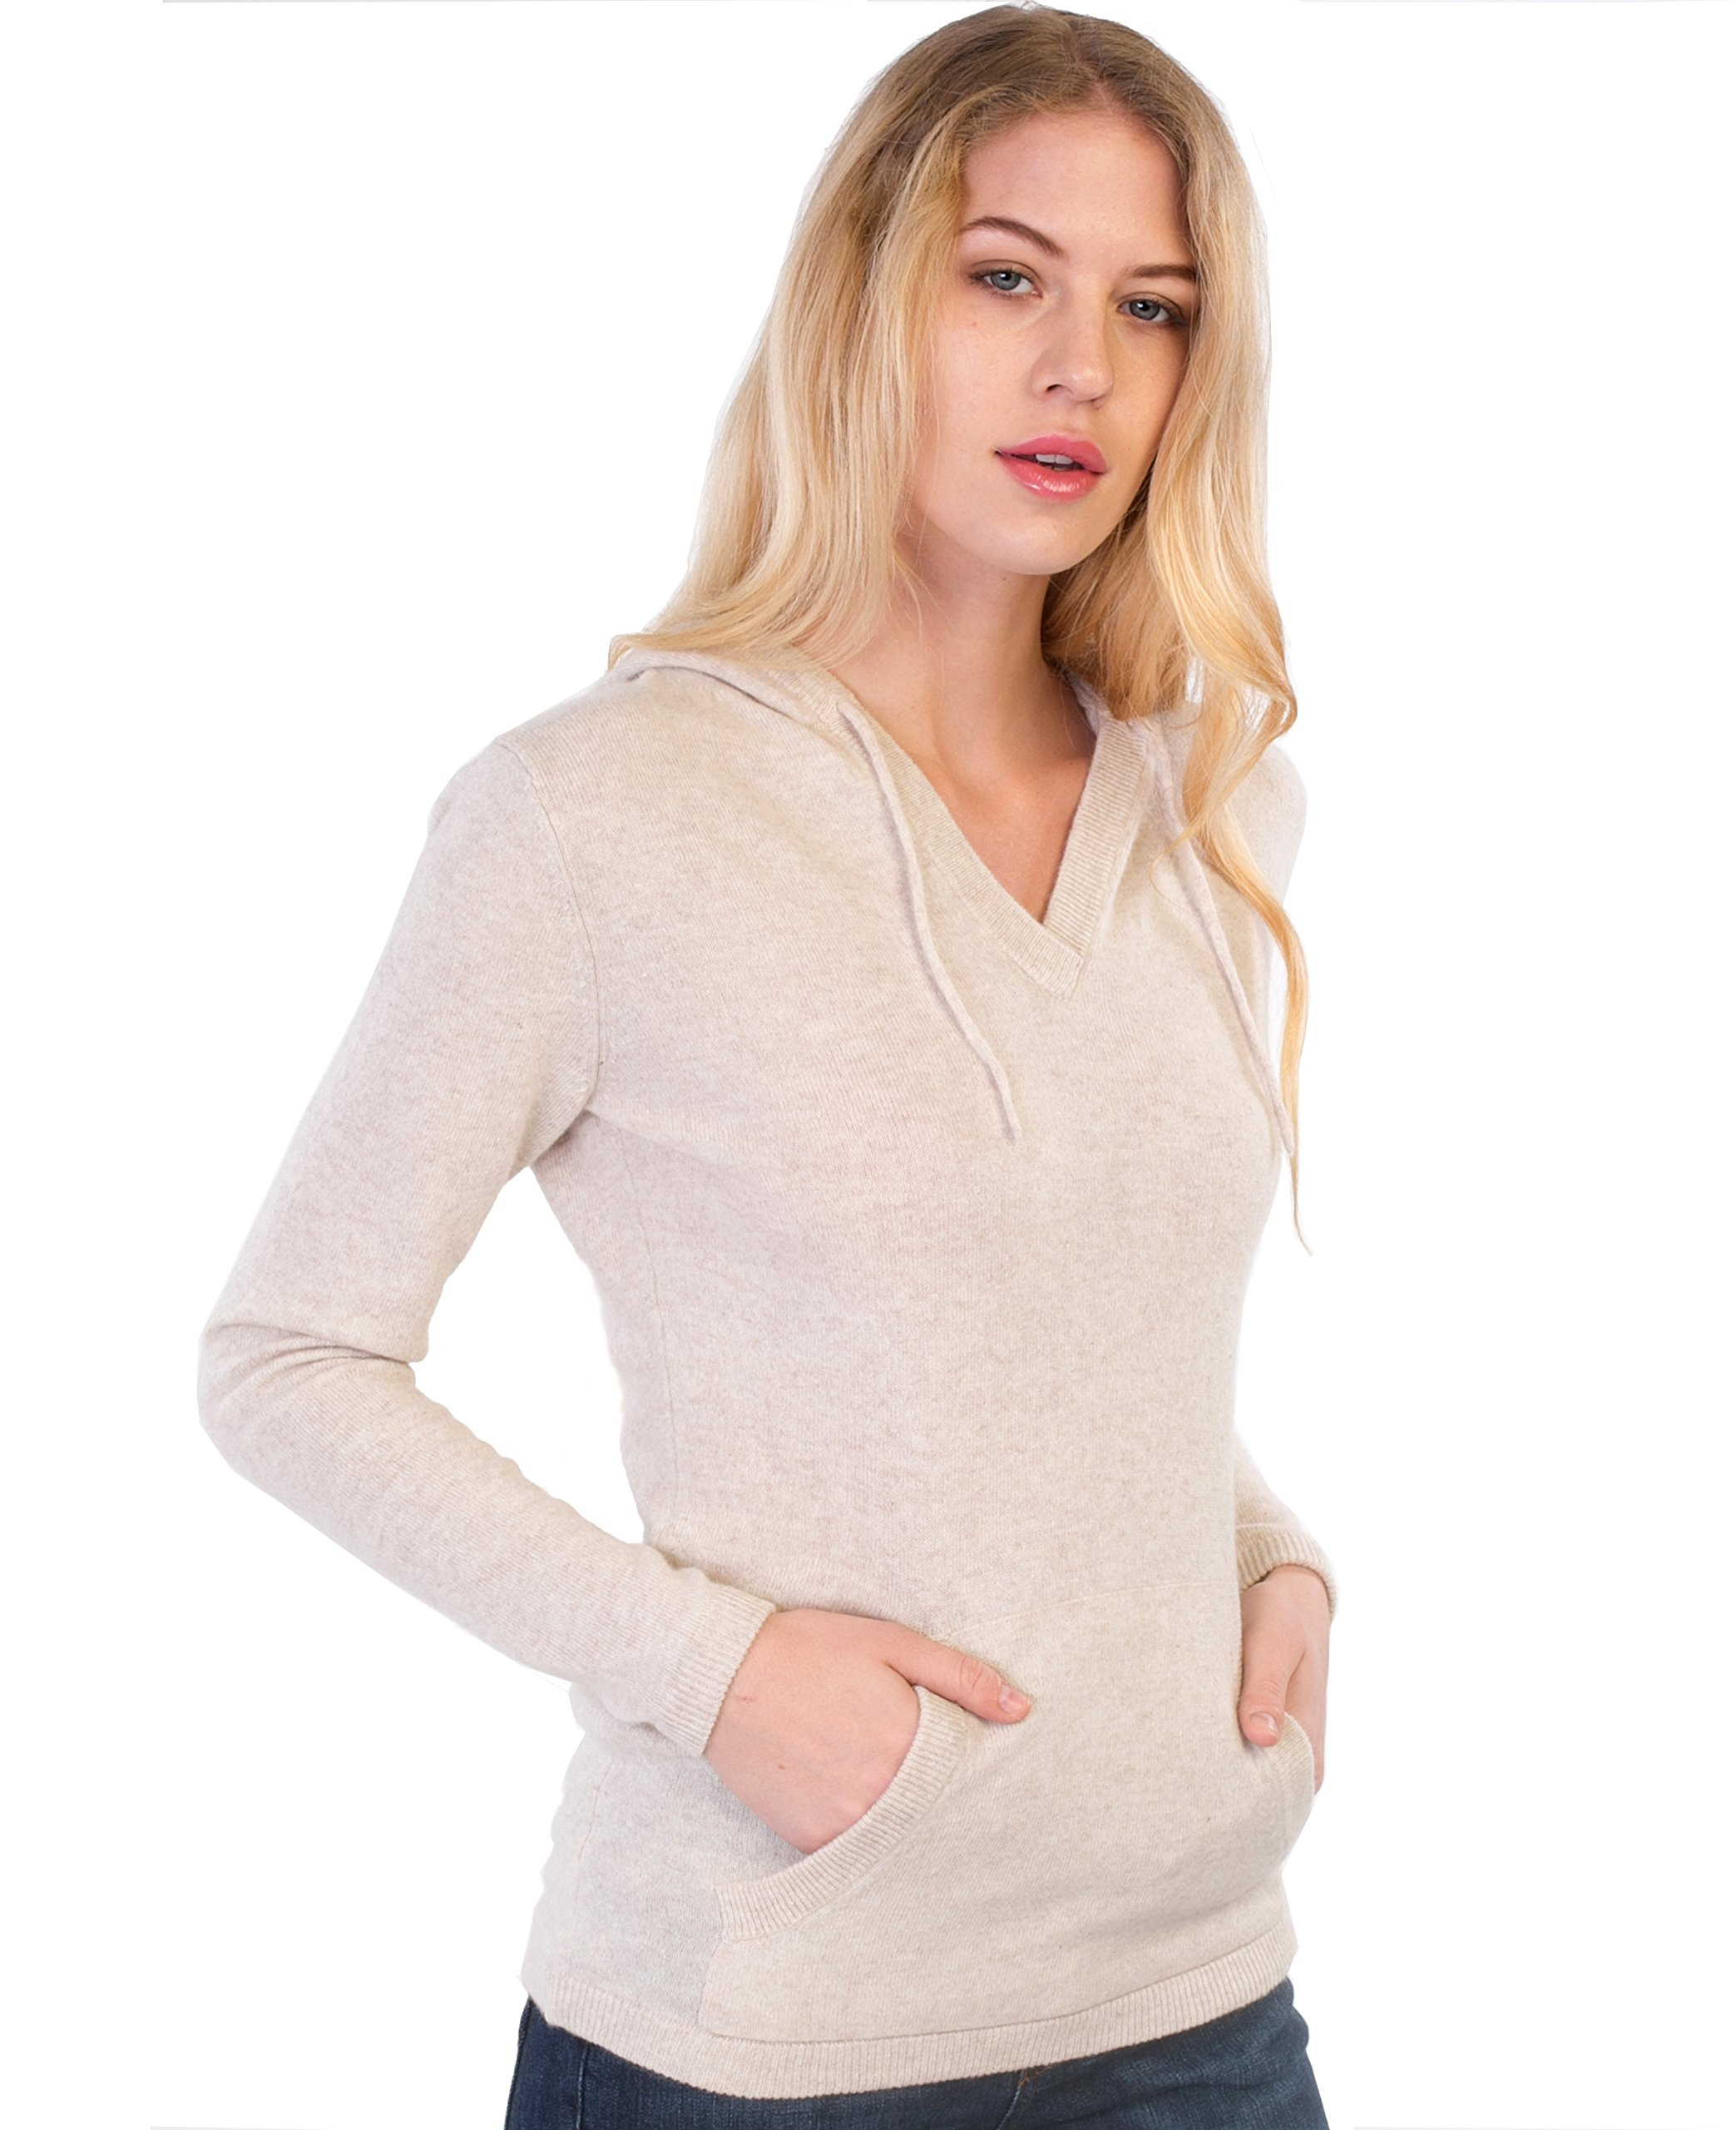 cashmere 4 U 100% Cashmere Sweater Hoodie Pullover For Women